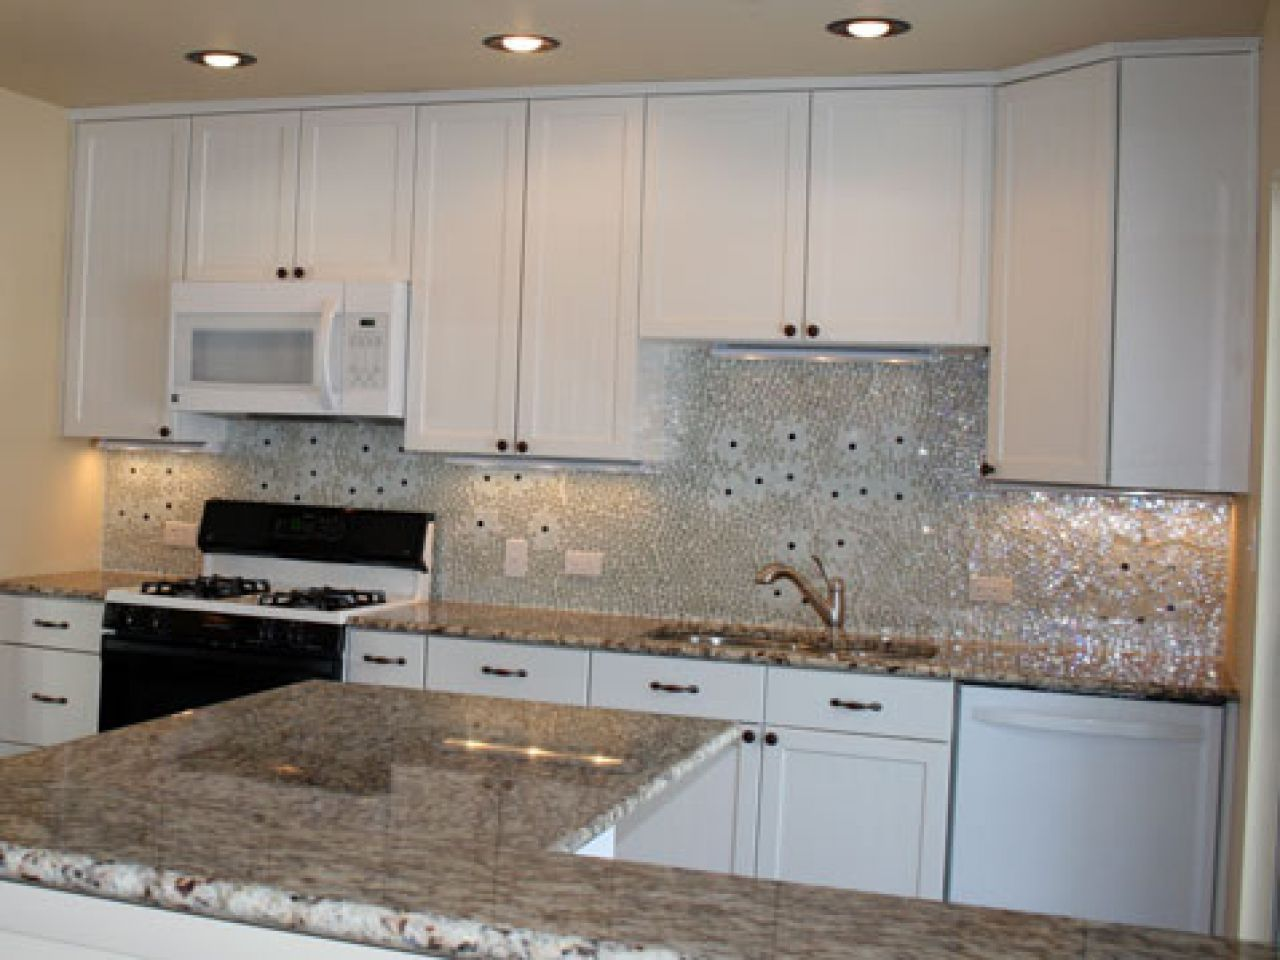 A customized one of a kind kitchen